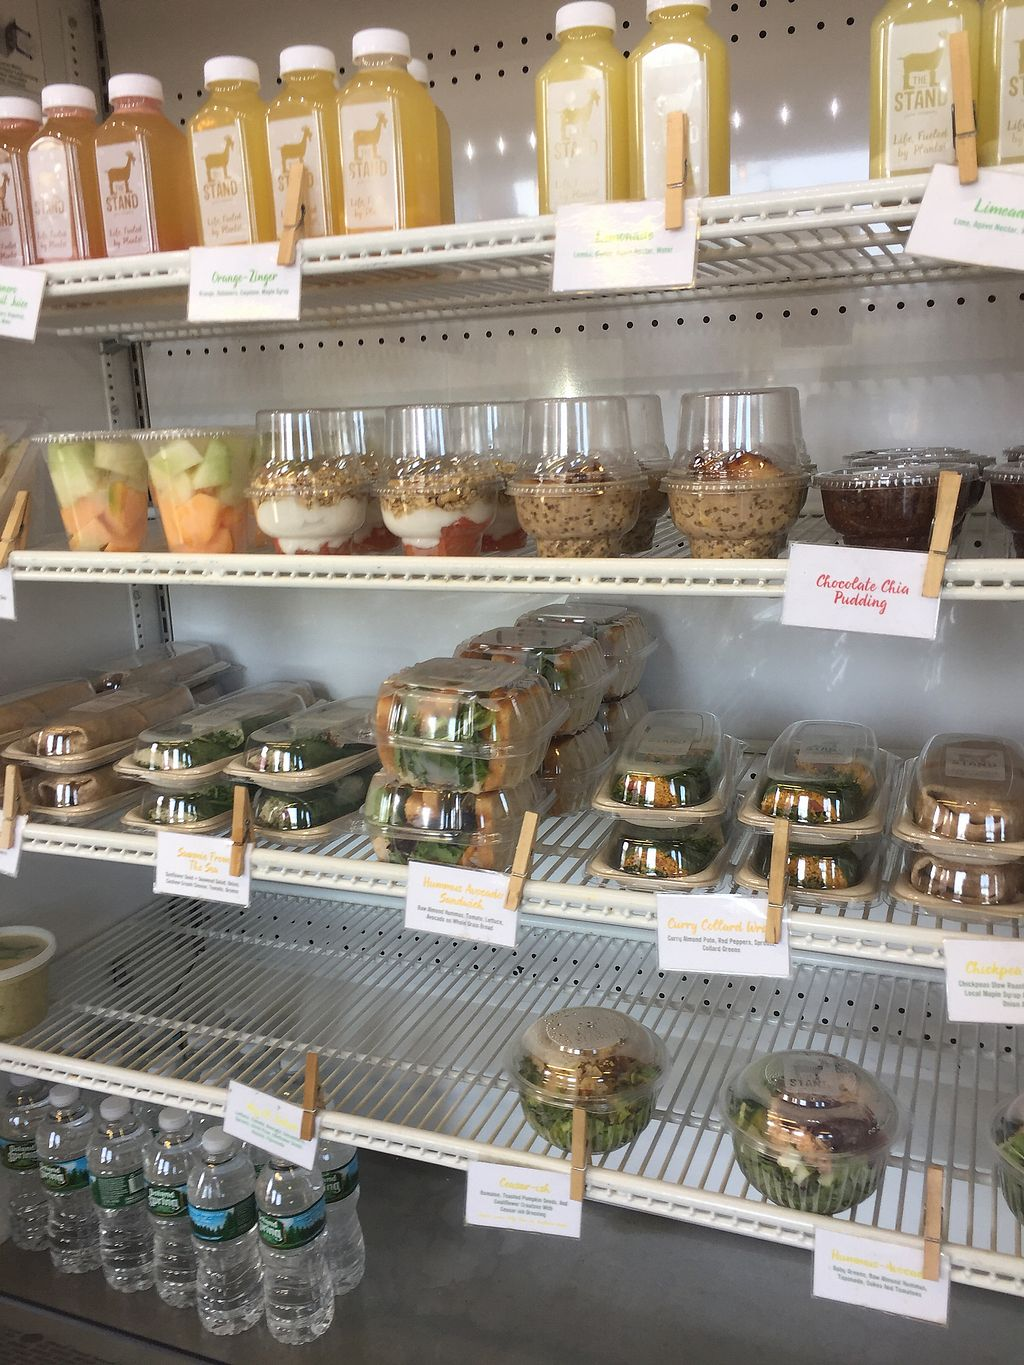 """Photo of The Stand Juice Company  by <a href=""""/members/profile/Lizziebenson"""">Lizziebenson</a> <br/>yum <br/> August 28, 2017  - <a href='/contact/abuse/image/29262/298291'>Report</a>"""